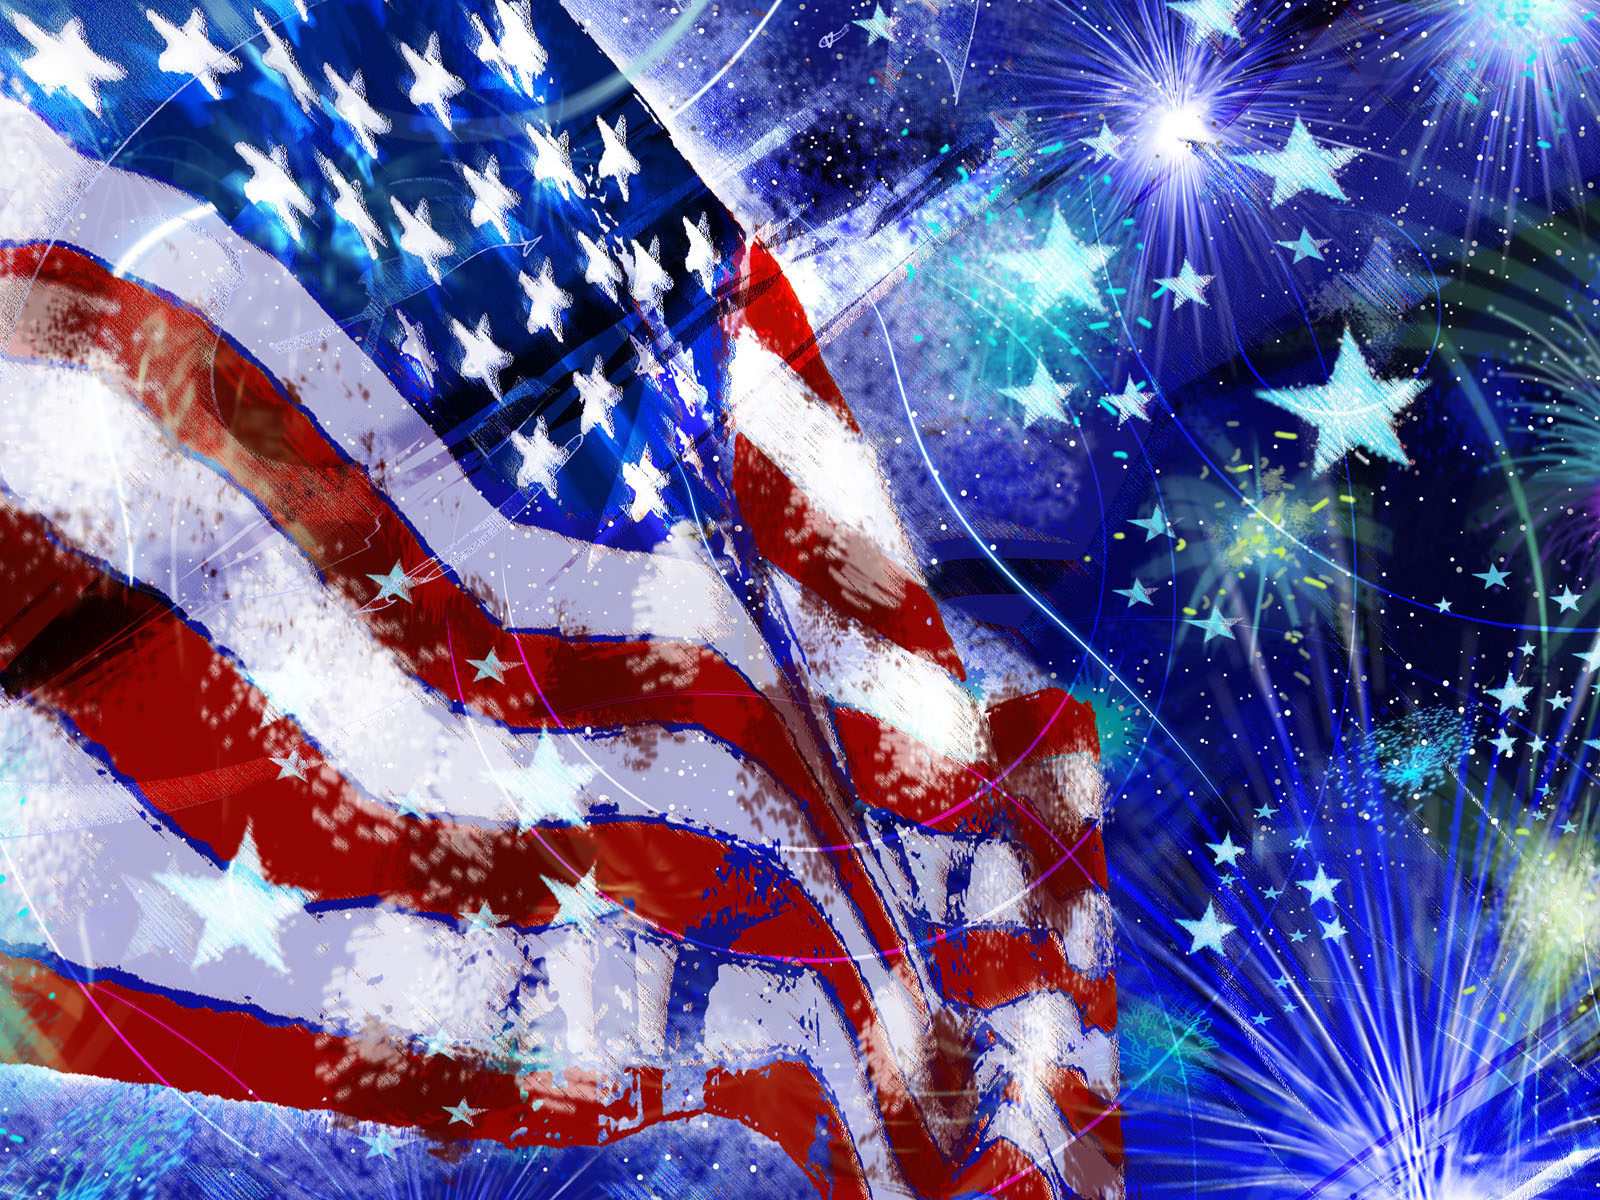 Fall Leaves Wallpaper Windows 7 American Flag Red White Blue Fireworks Stars Independence